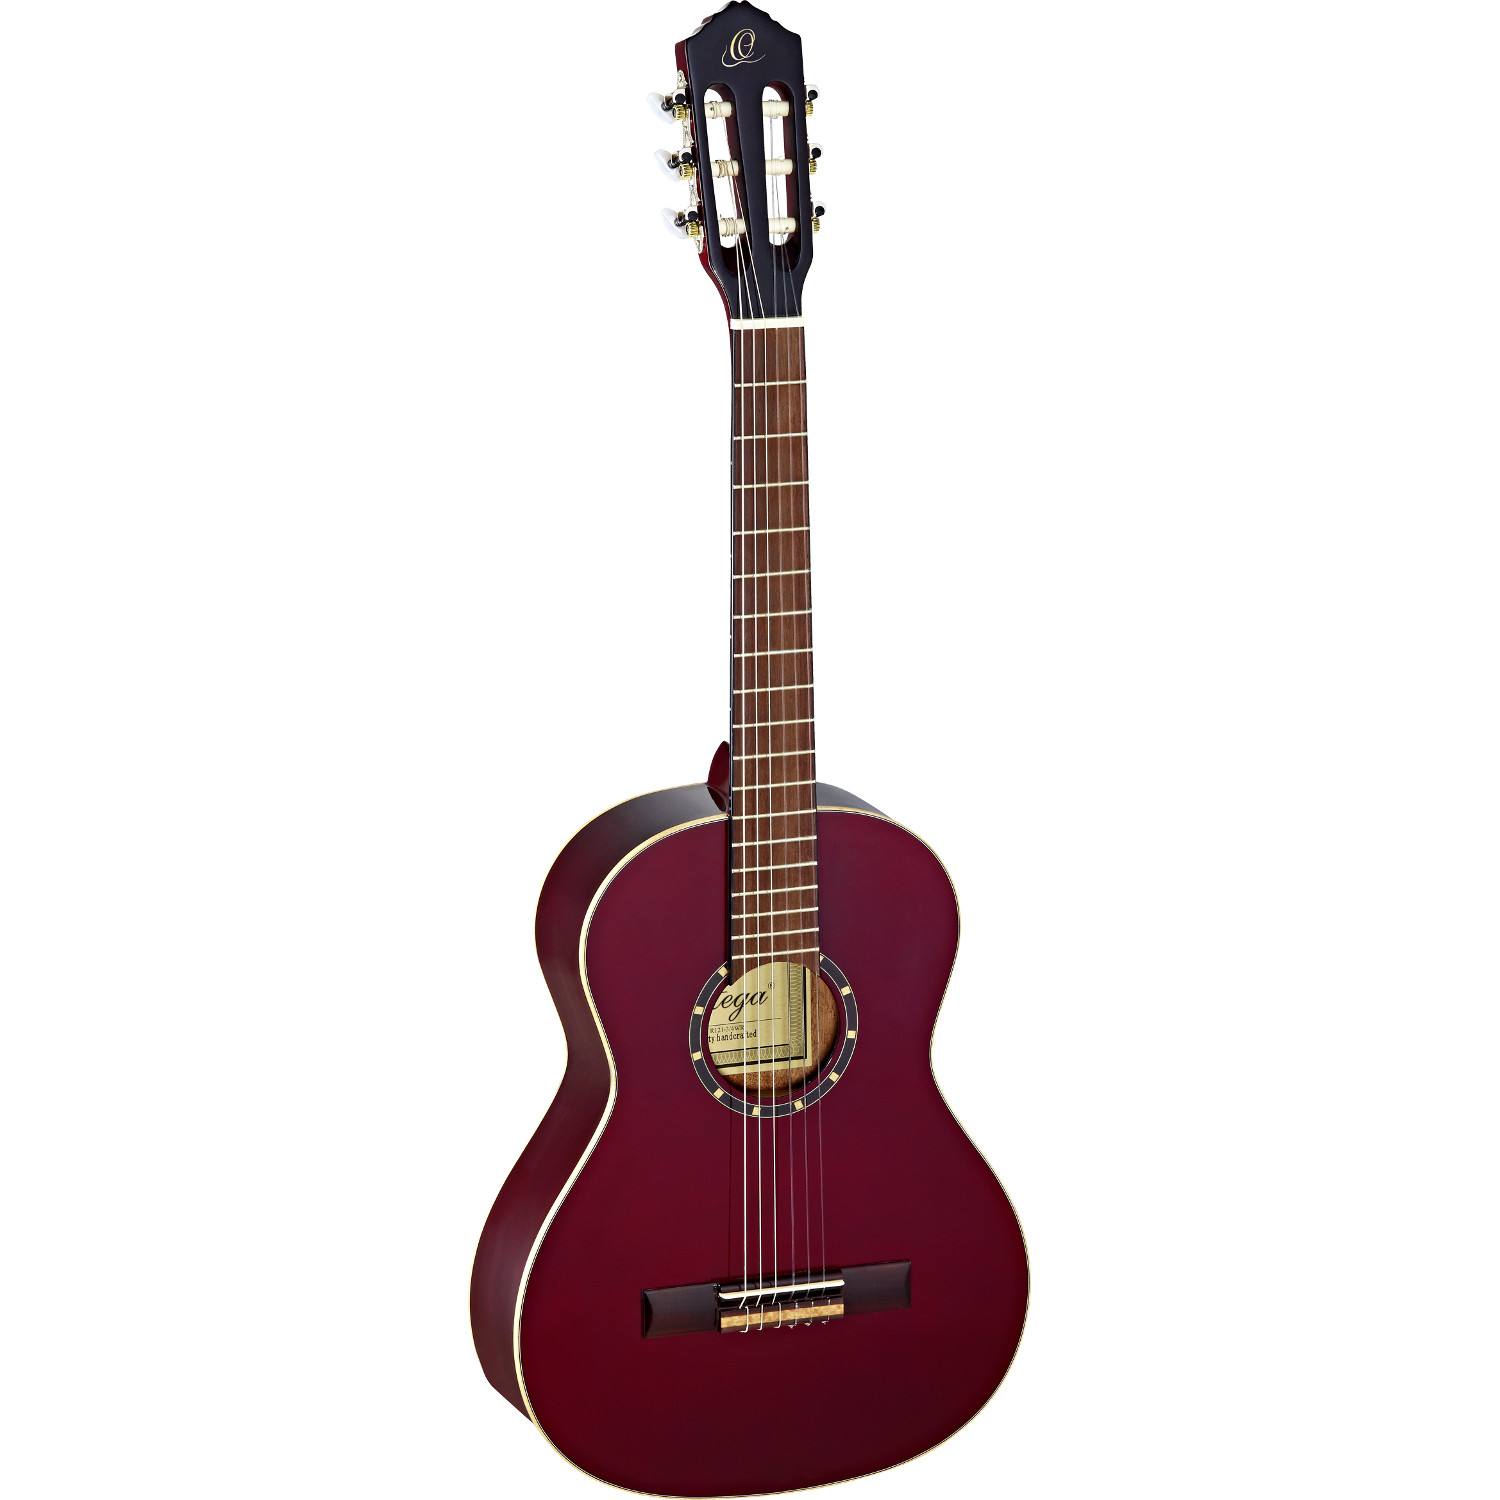 Ortega Family Series R121 3 4 wine red with gig bag